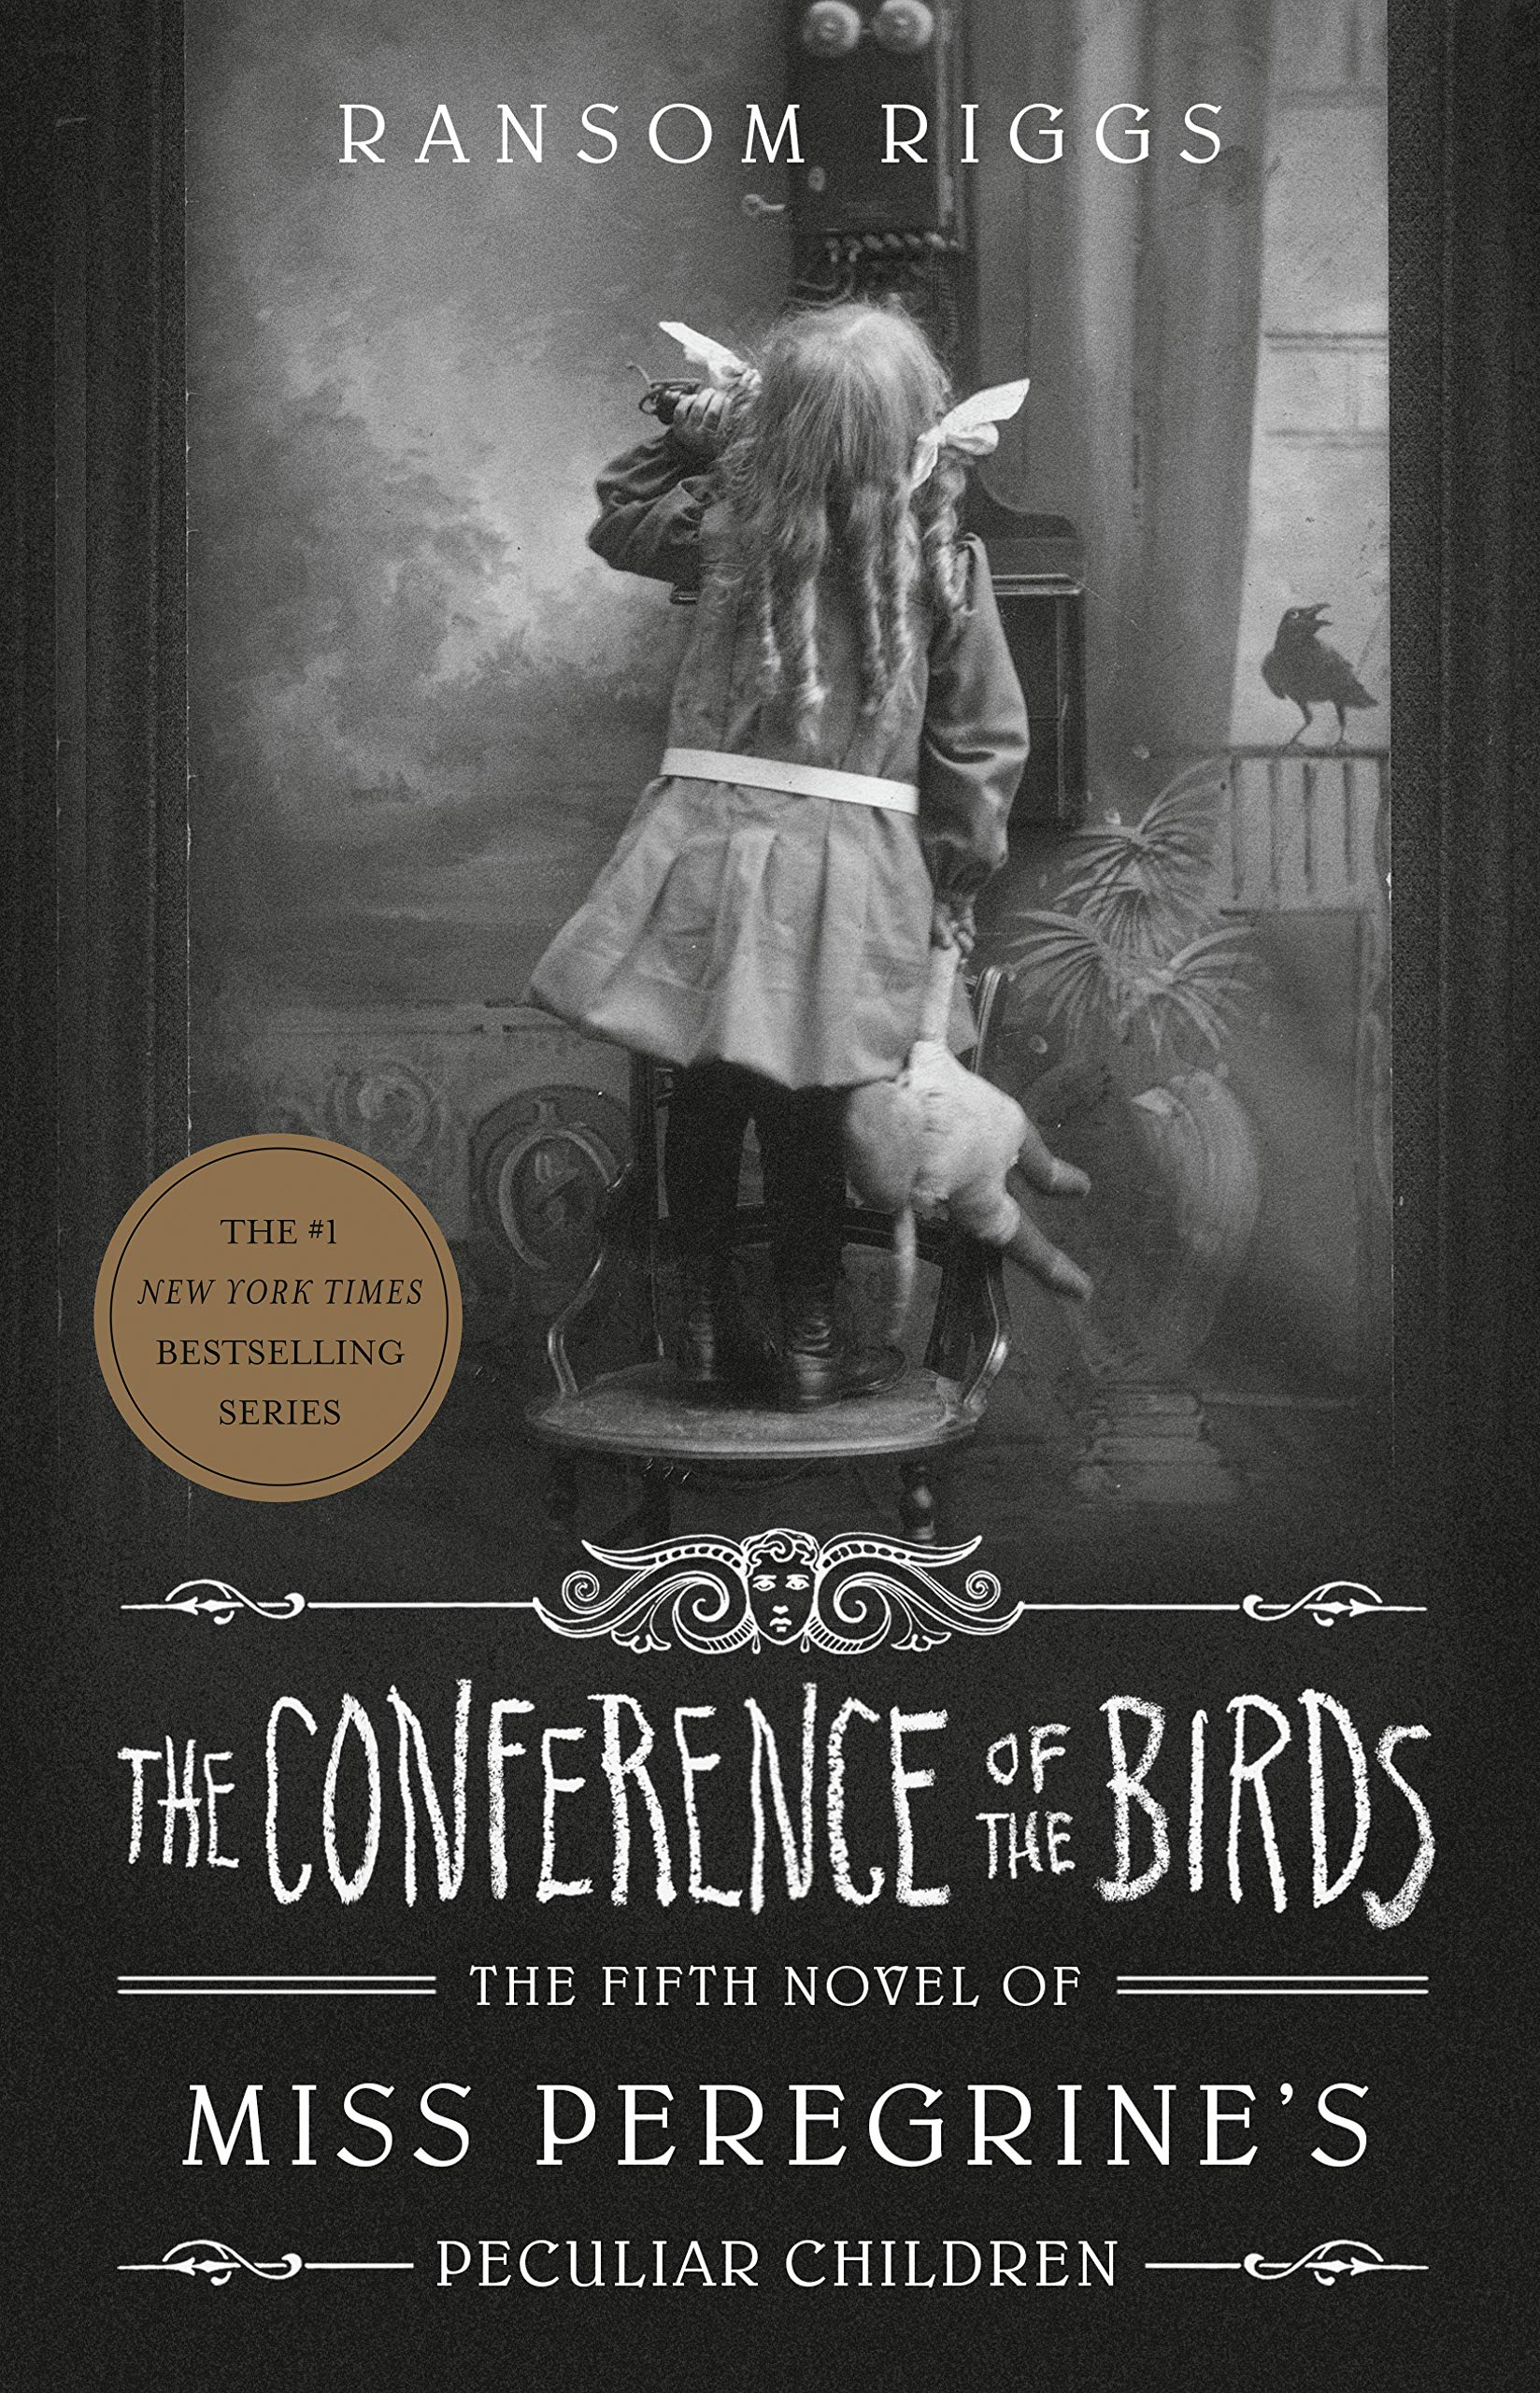 Amazon.com: The Conference of the Birds (Miss Peregrine's Peculiar  Children) (9780735231504): Riggs, Ransom: Books